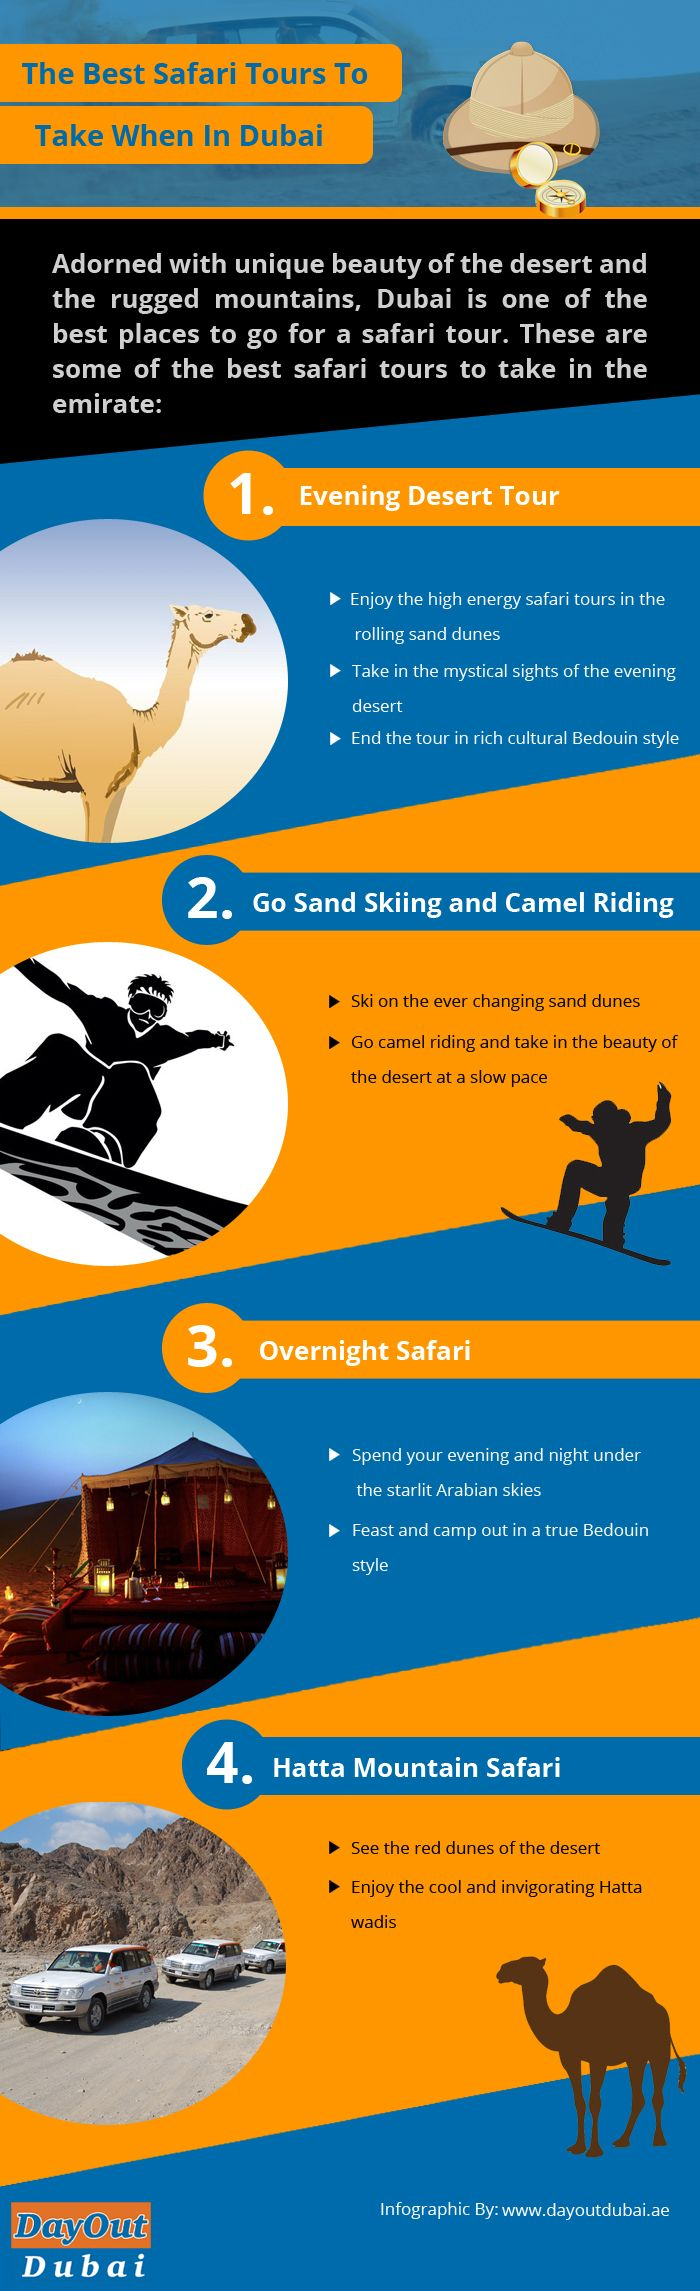 Adorned with the unique beauty of the desert and the rugged mountains, Dubai is one of the best places to go for a safari tour. There are some of the best safari tours to take when you are in Dubai. See this infographic for more information.